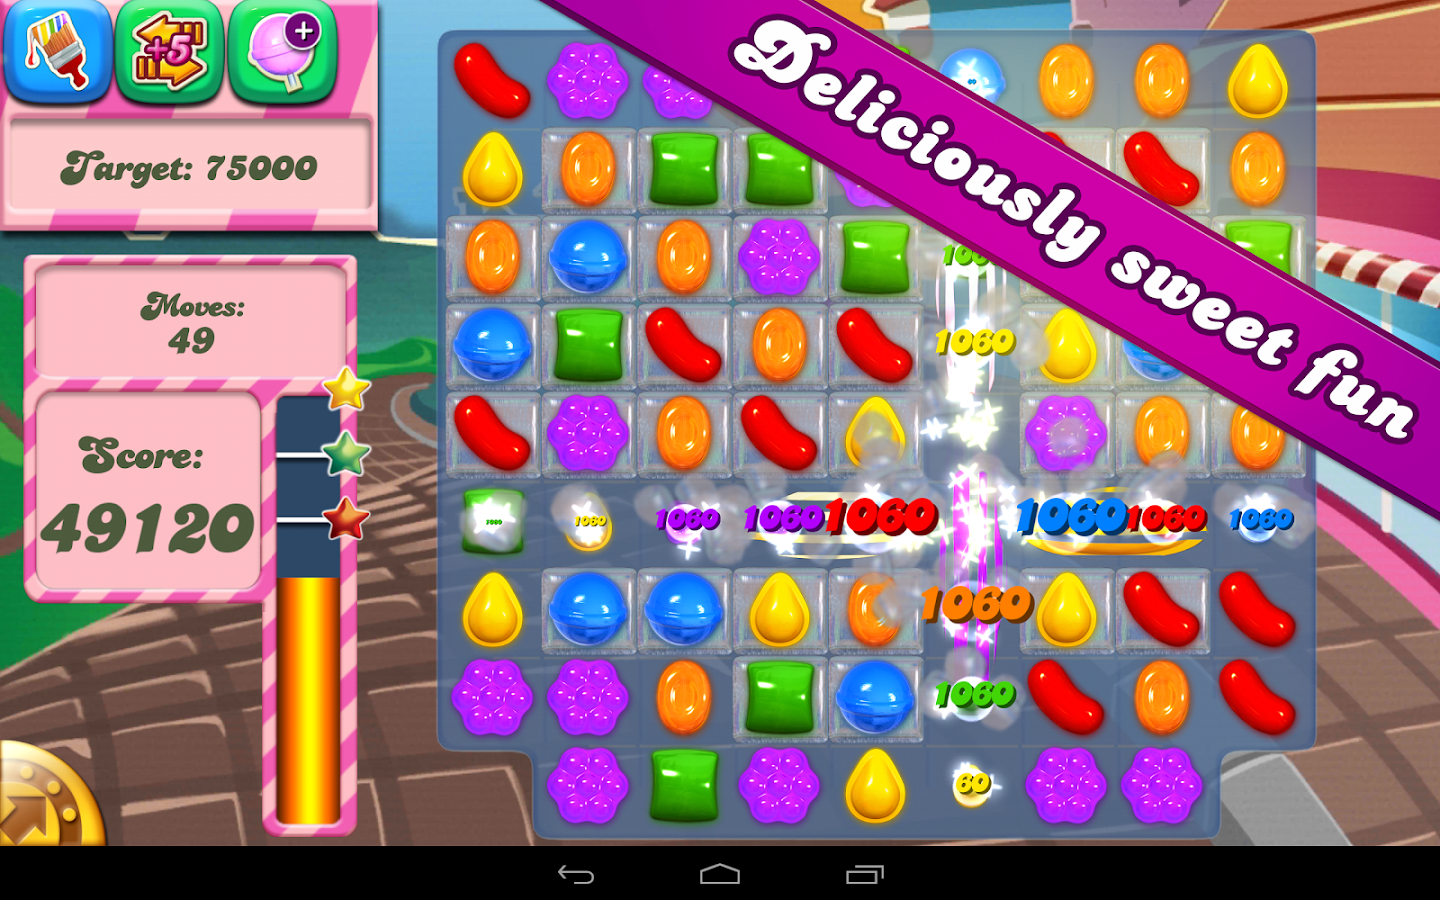 Candy Crush Saga v1.35.0 Mod